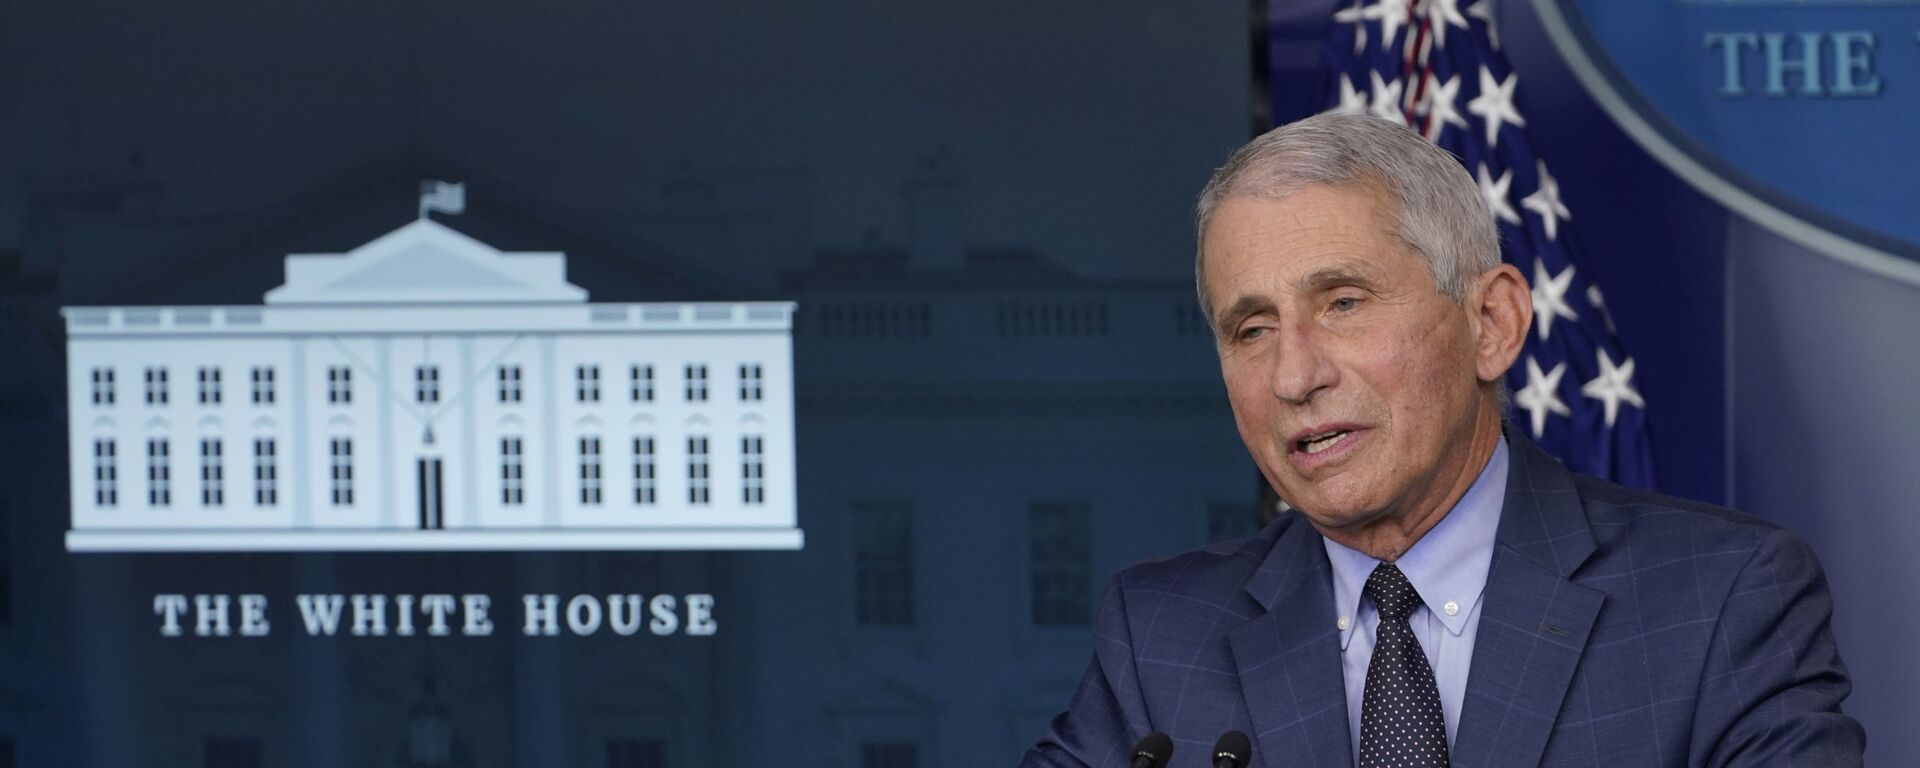 Dr. Anthony Fauci, director of the National Institute of Allergy and Infectious Diseases, speaks during a briefing with the coronavirus task force at the White House in Washington, Thursday, Nov. 19, 2020 - Sputnik Italia, 1920, 19.05.2021